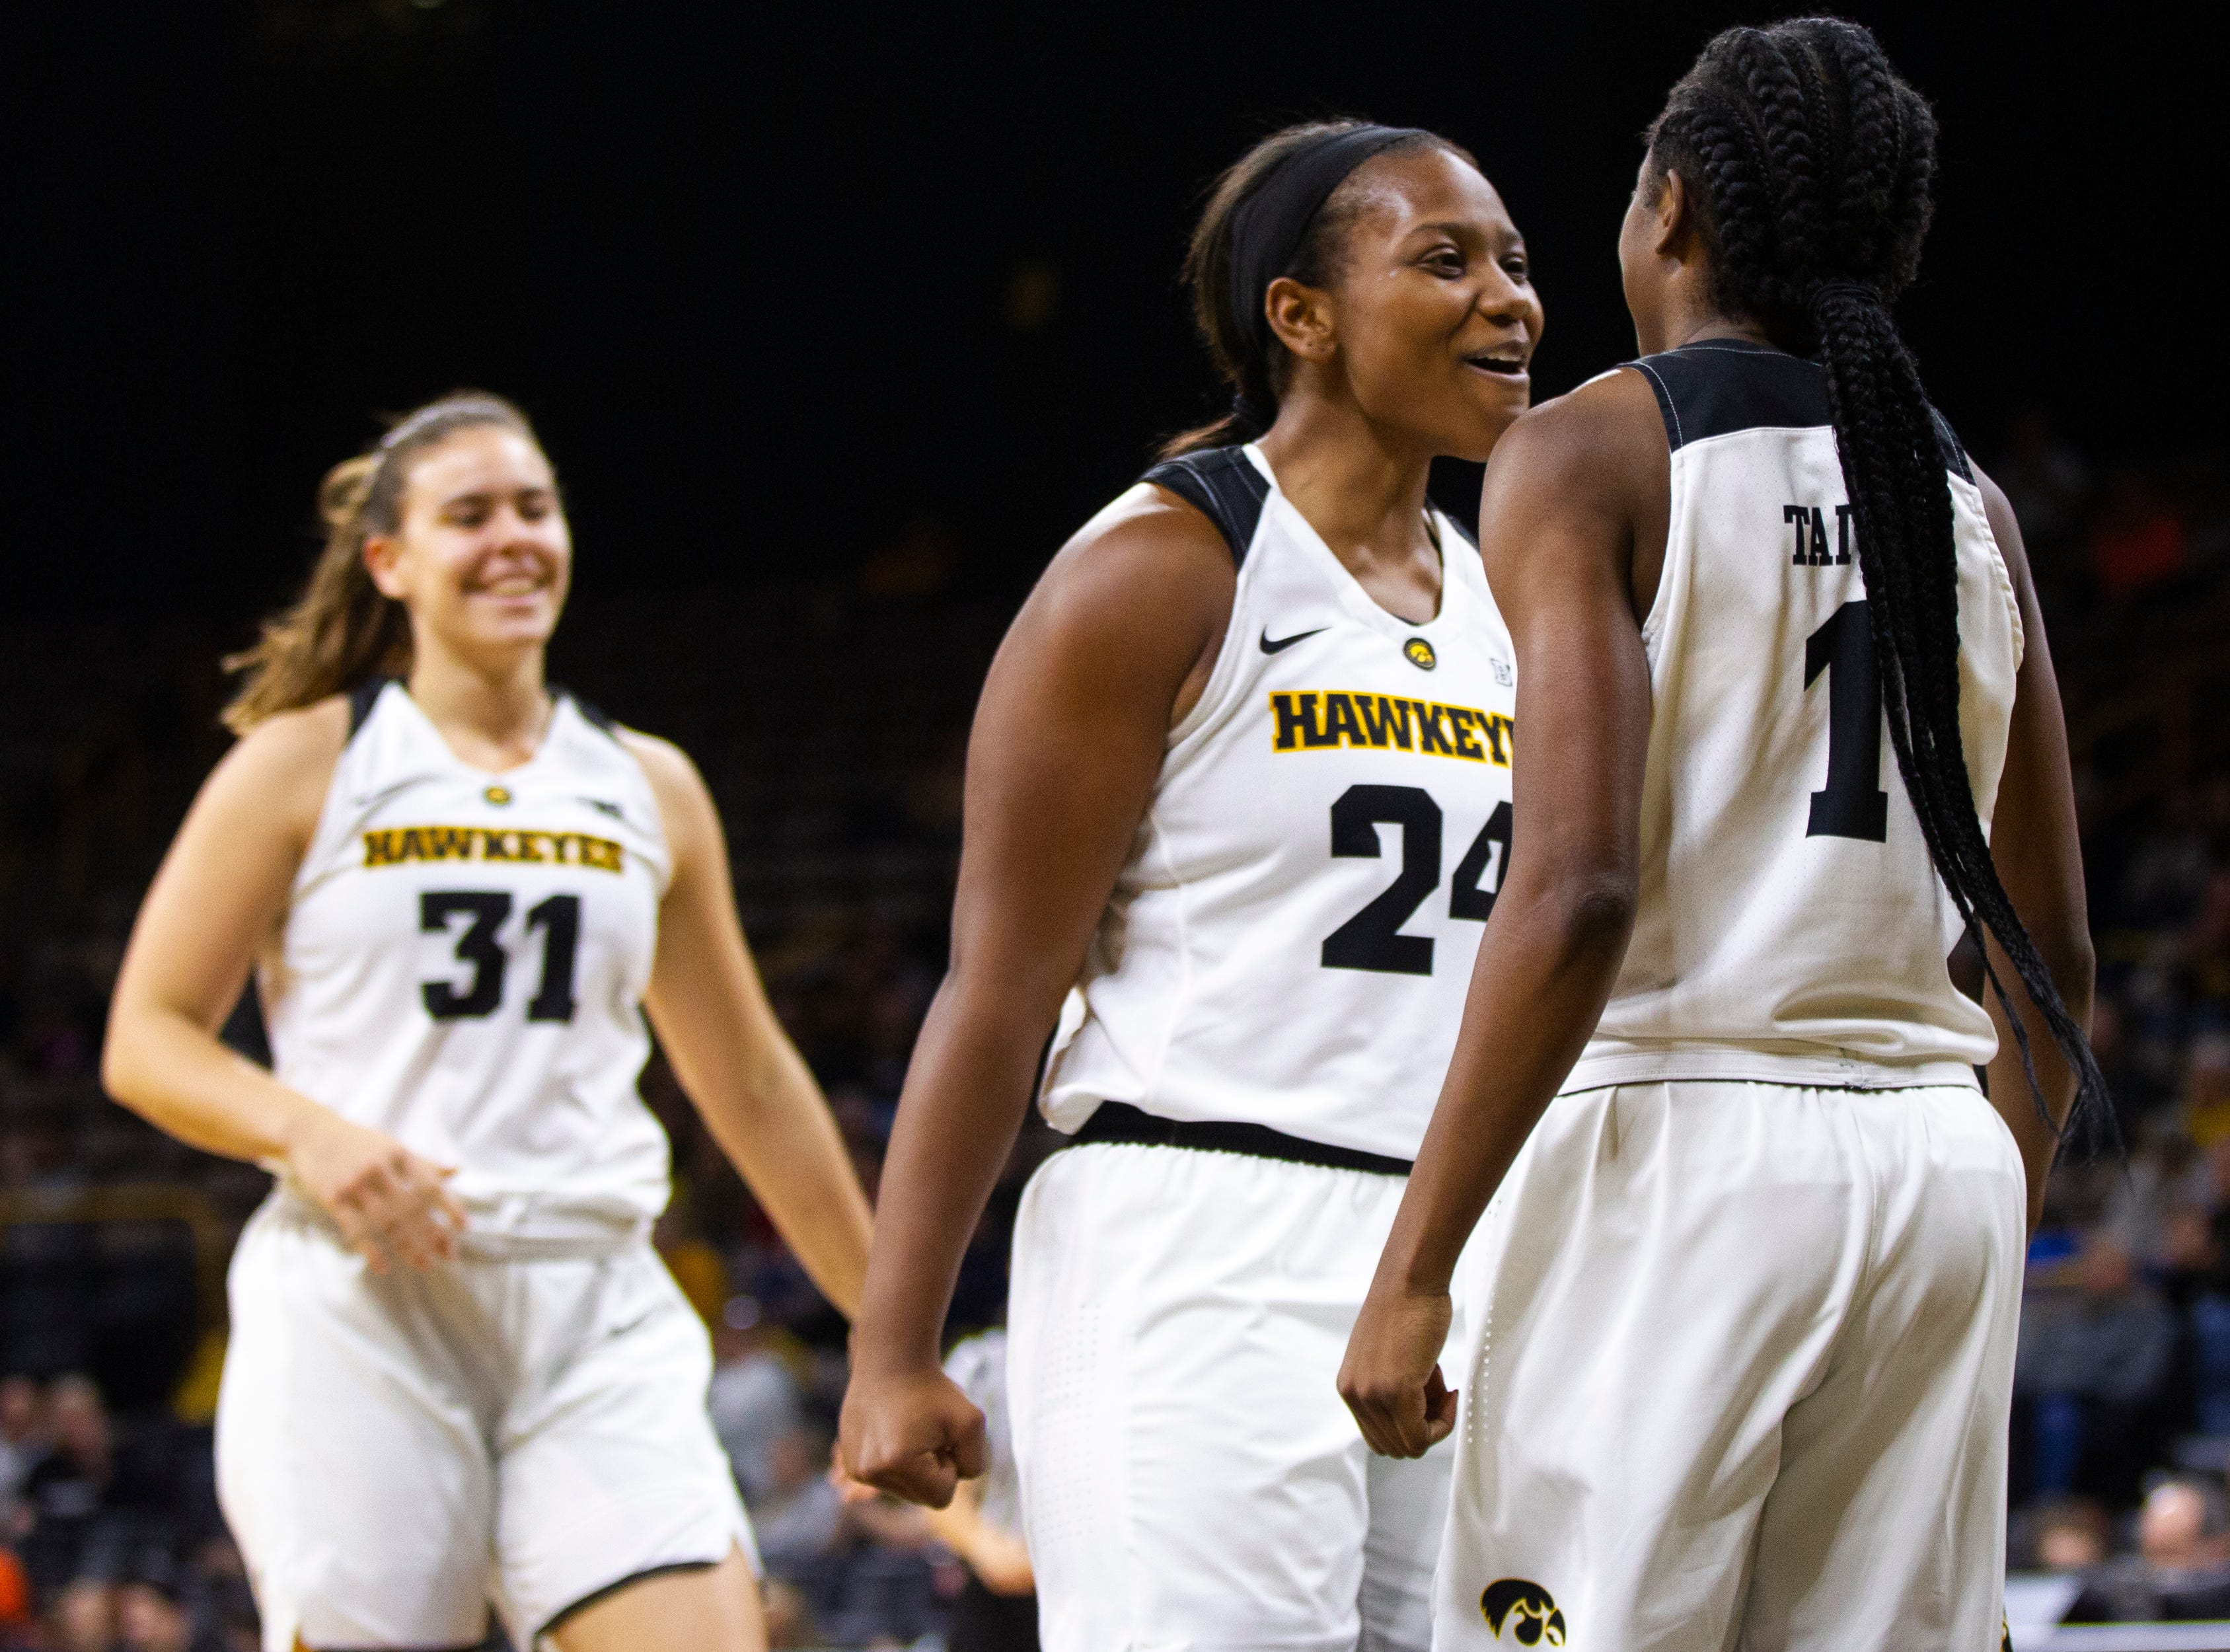 Iowa guard Zion Sanders (24) celebrates with Iowa guard Tomi Taiwo (1) after Taiwo drew a foul during an NCAA women's basketball game on Saturday, Nov. 17, 2018, at Carver-Hawkeye Arena in Iowa City.